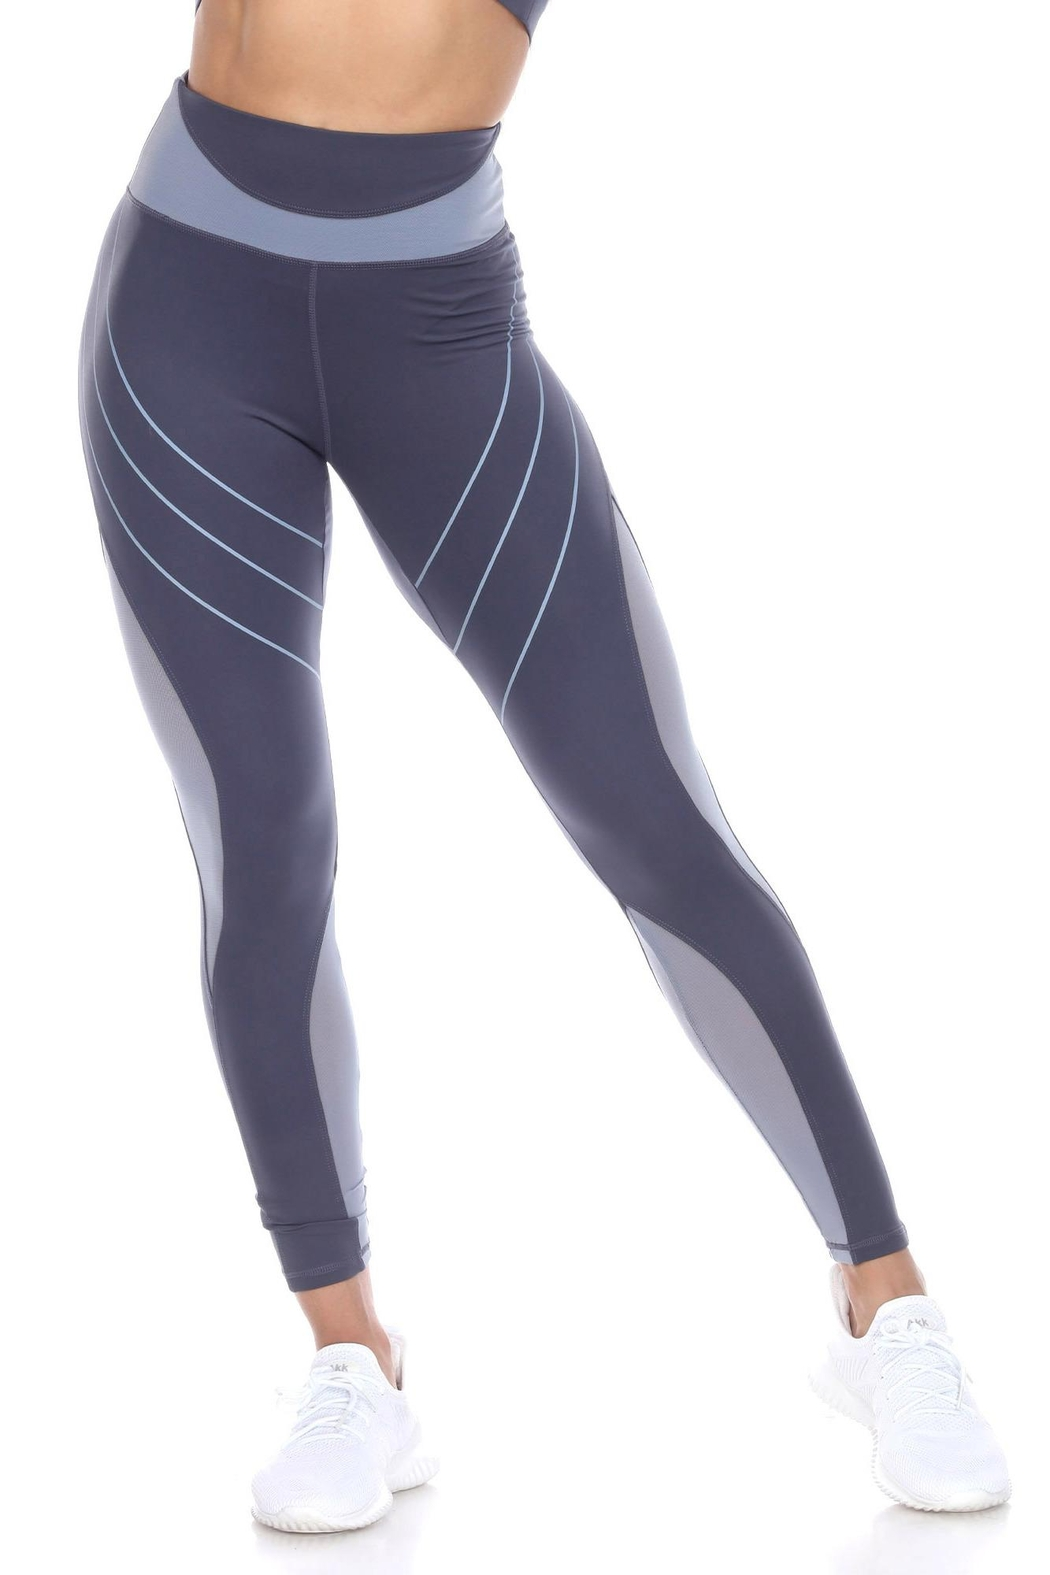 White Mark High-Waist Reflective Piping Fitness Leggings - Front Cropped Image